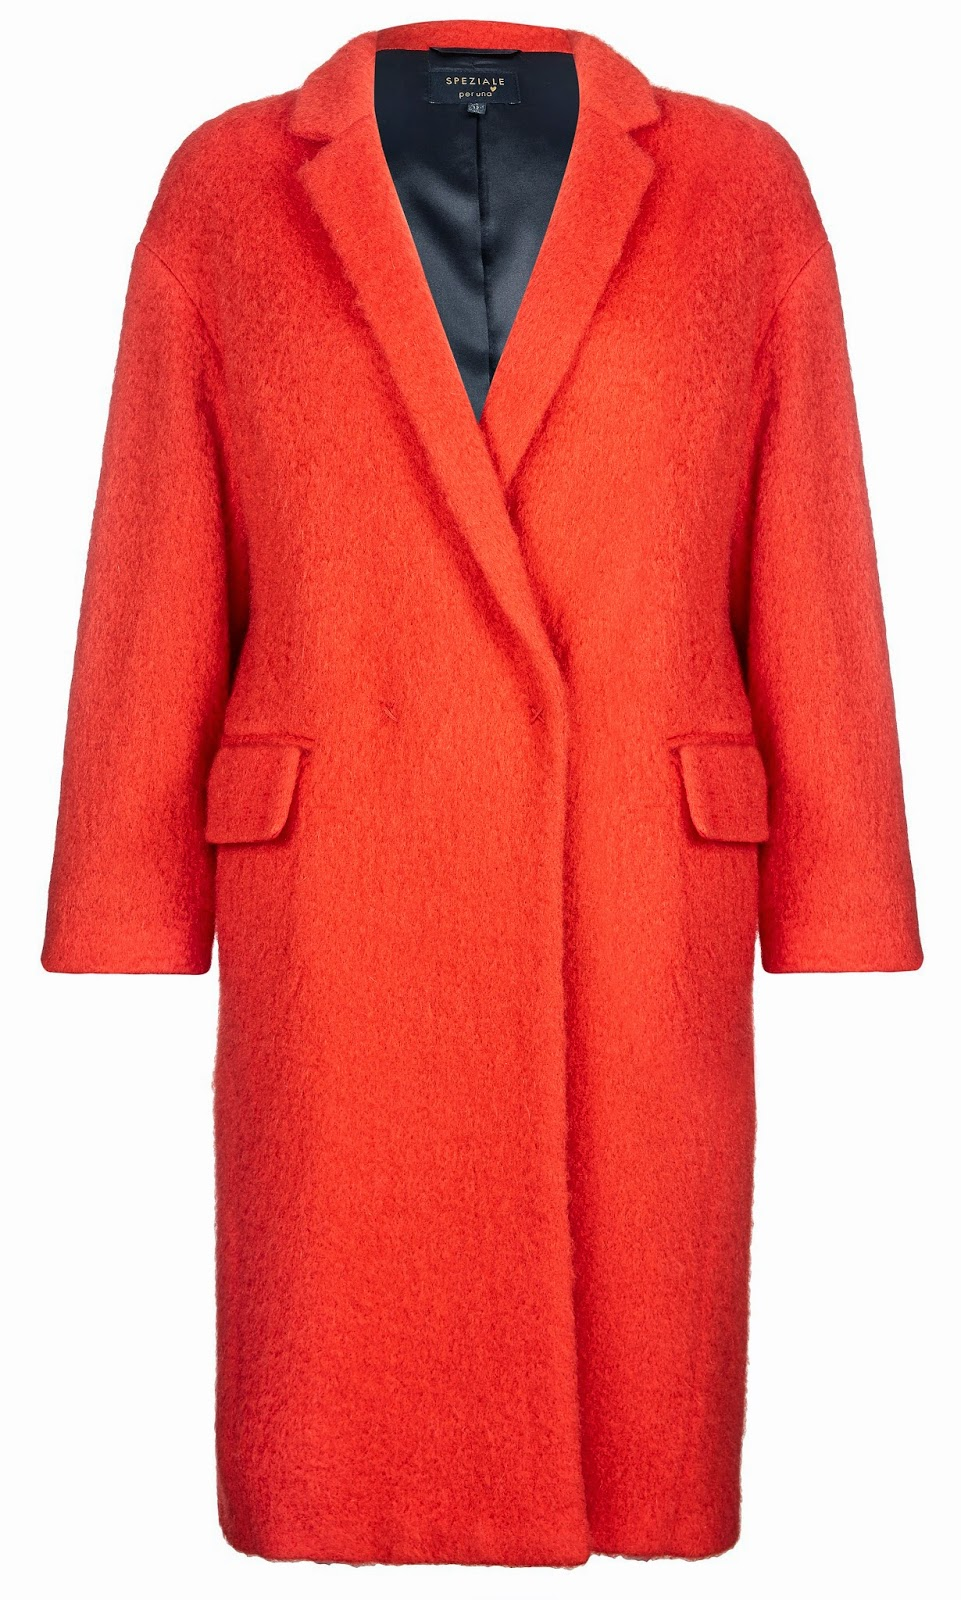 The Bright Red Coat